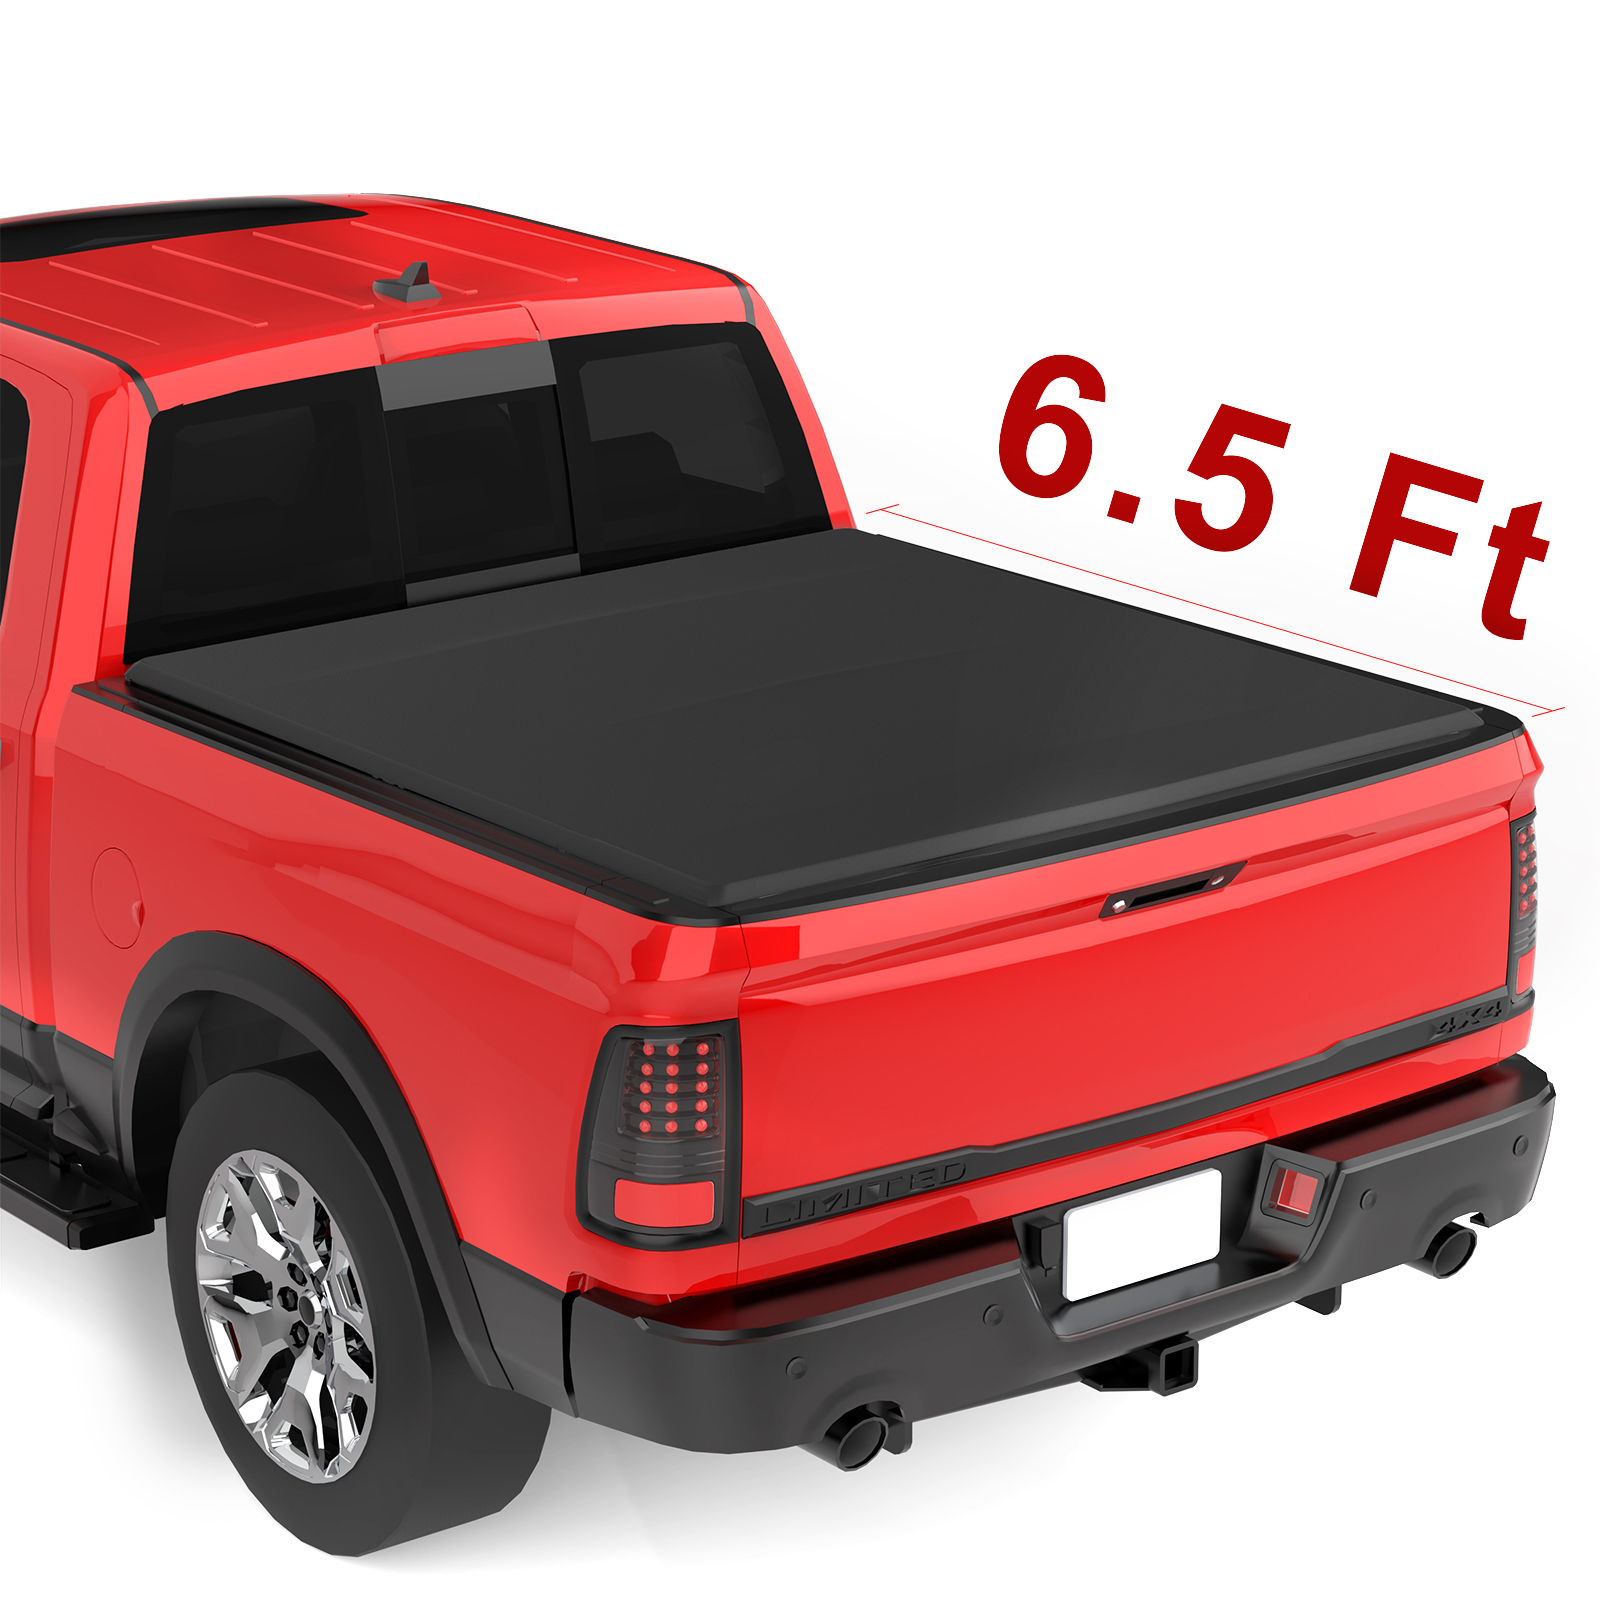 My Truck Does not Have The RamBox Husky Liners Heavy Duty Bed Mat Fits 2002-2018 Dodge Ram 1500 6.5 Bed